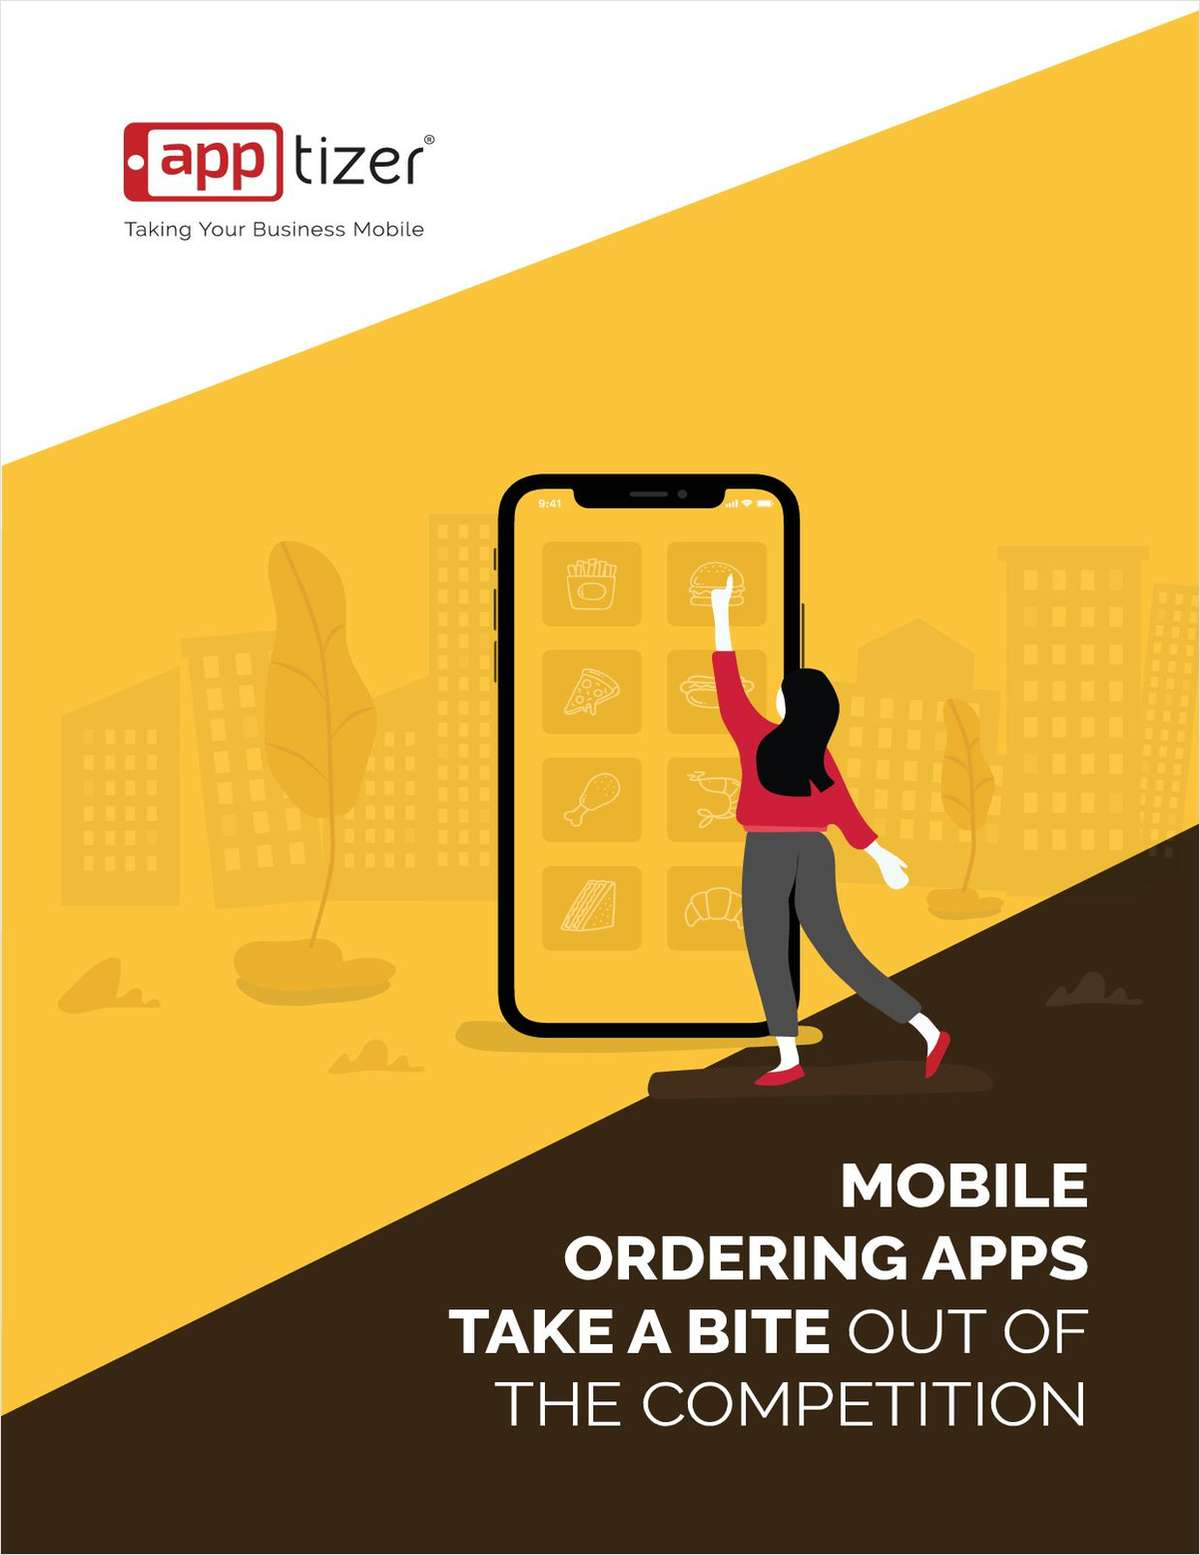 Mobile Ordering Apps Take a Bite Out of the Competition